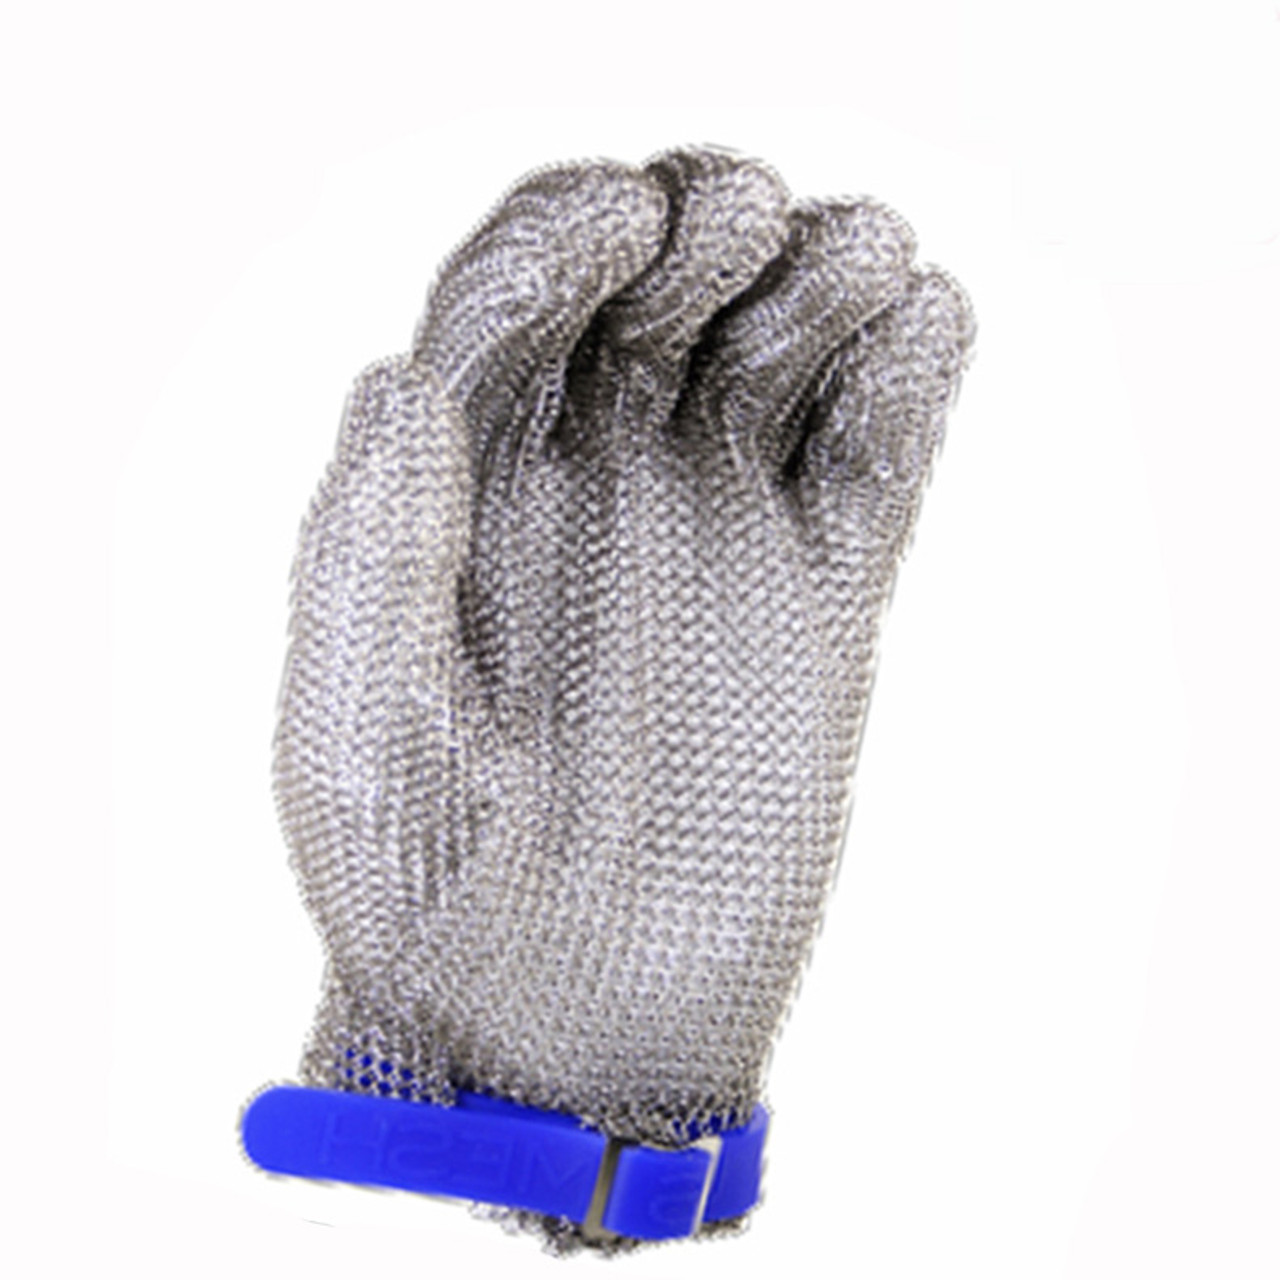 Stainless Steel Mesh Safety Glove with Silicone Strap - US Mesh  -  Free UPS Ground Shipping in Continental USA